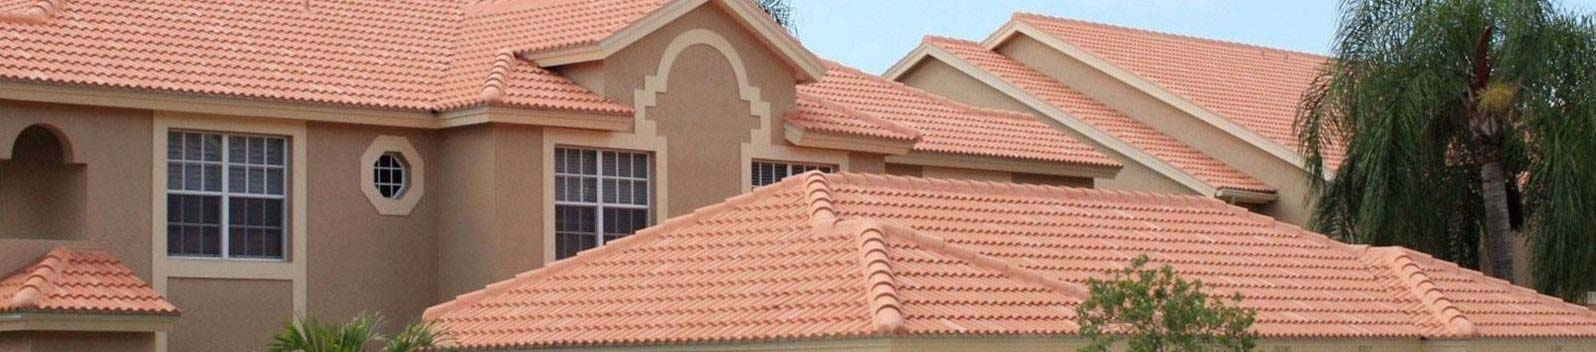 roofing company hollywood fl